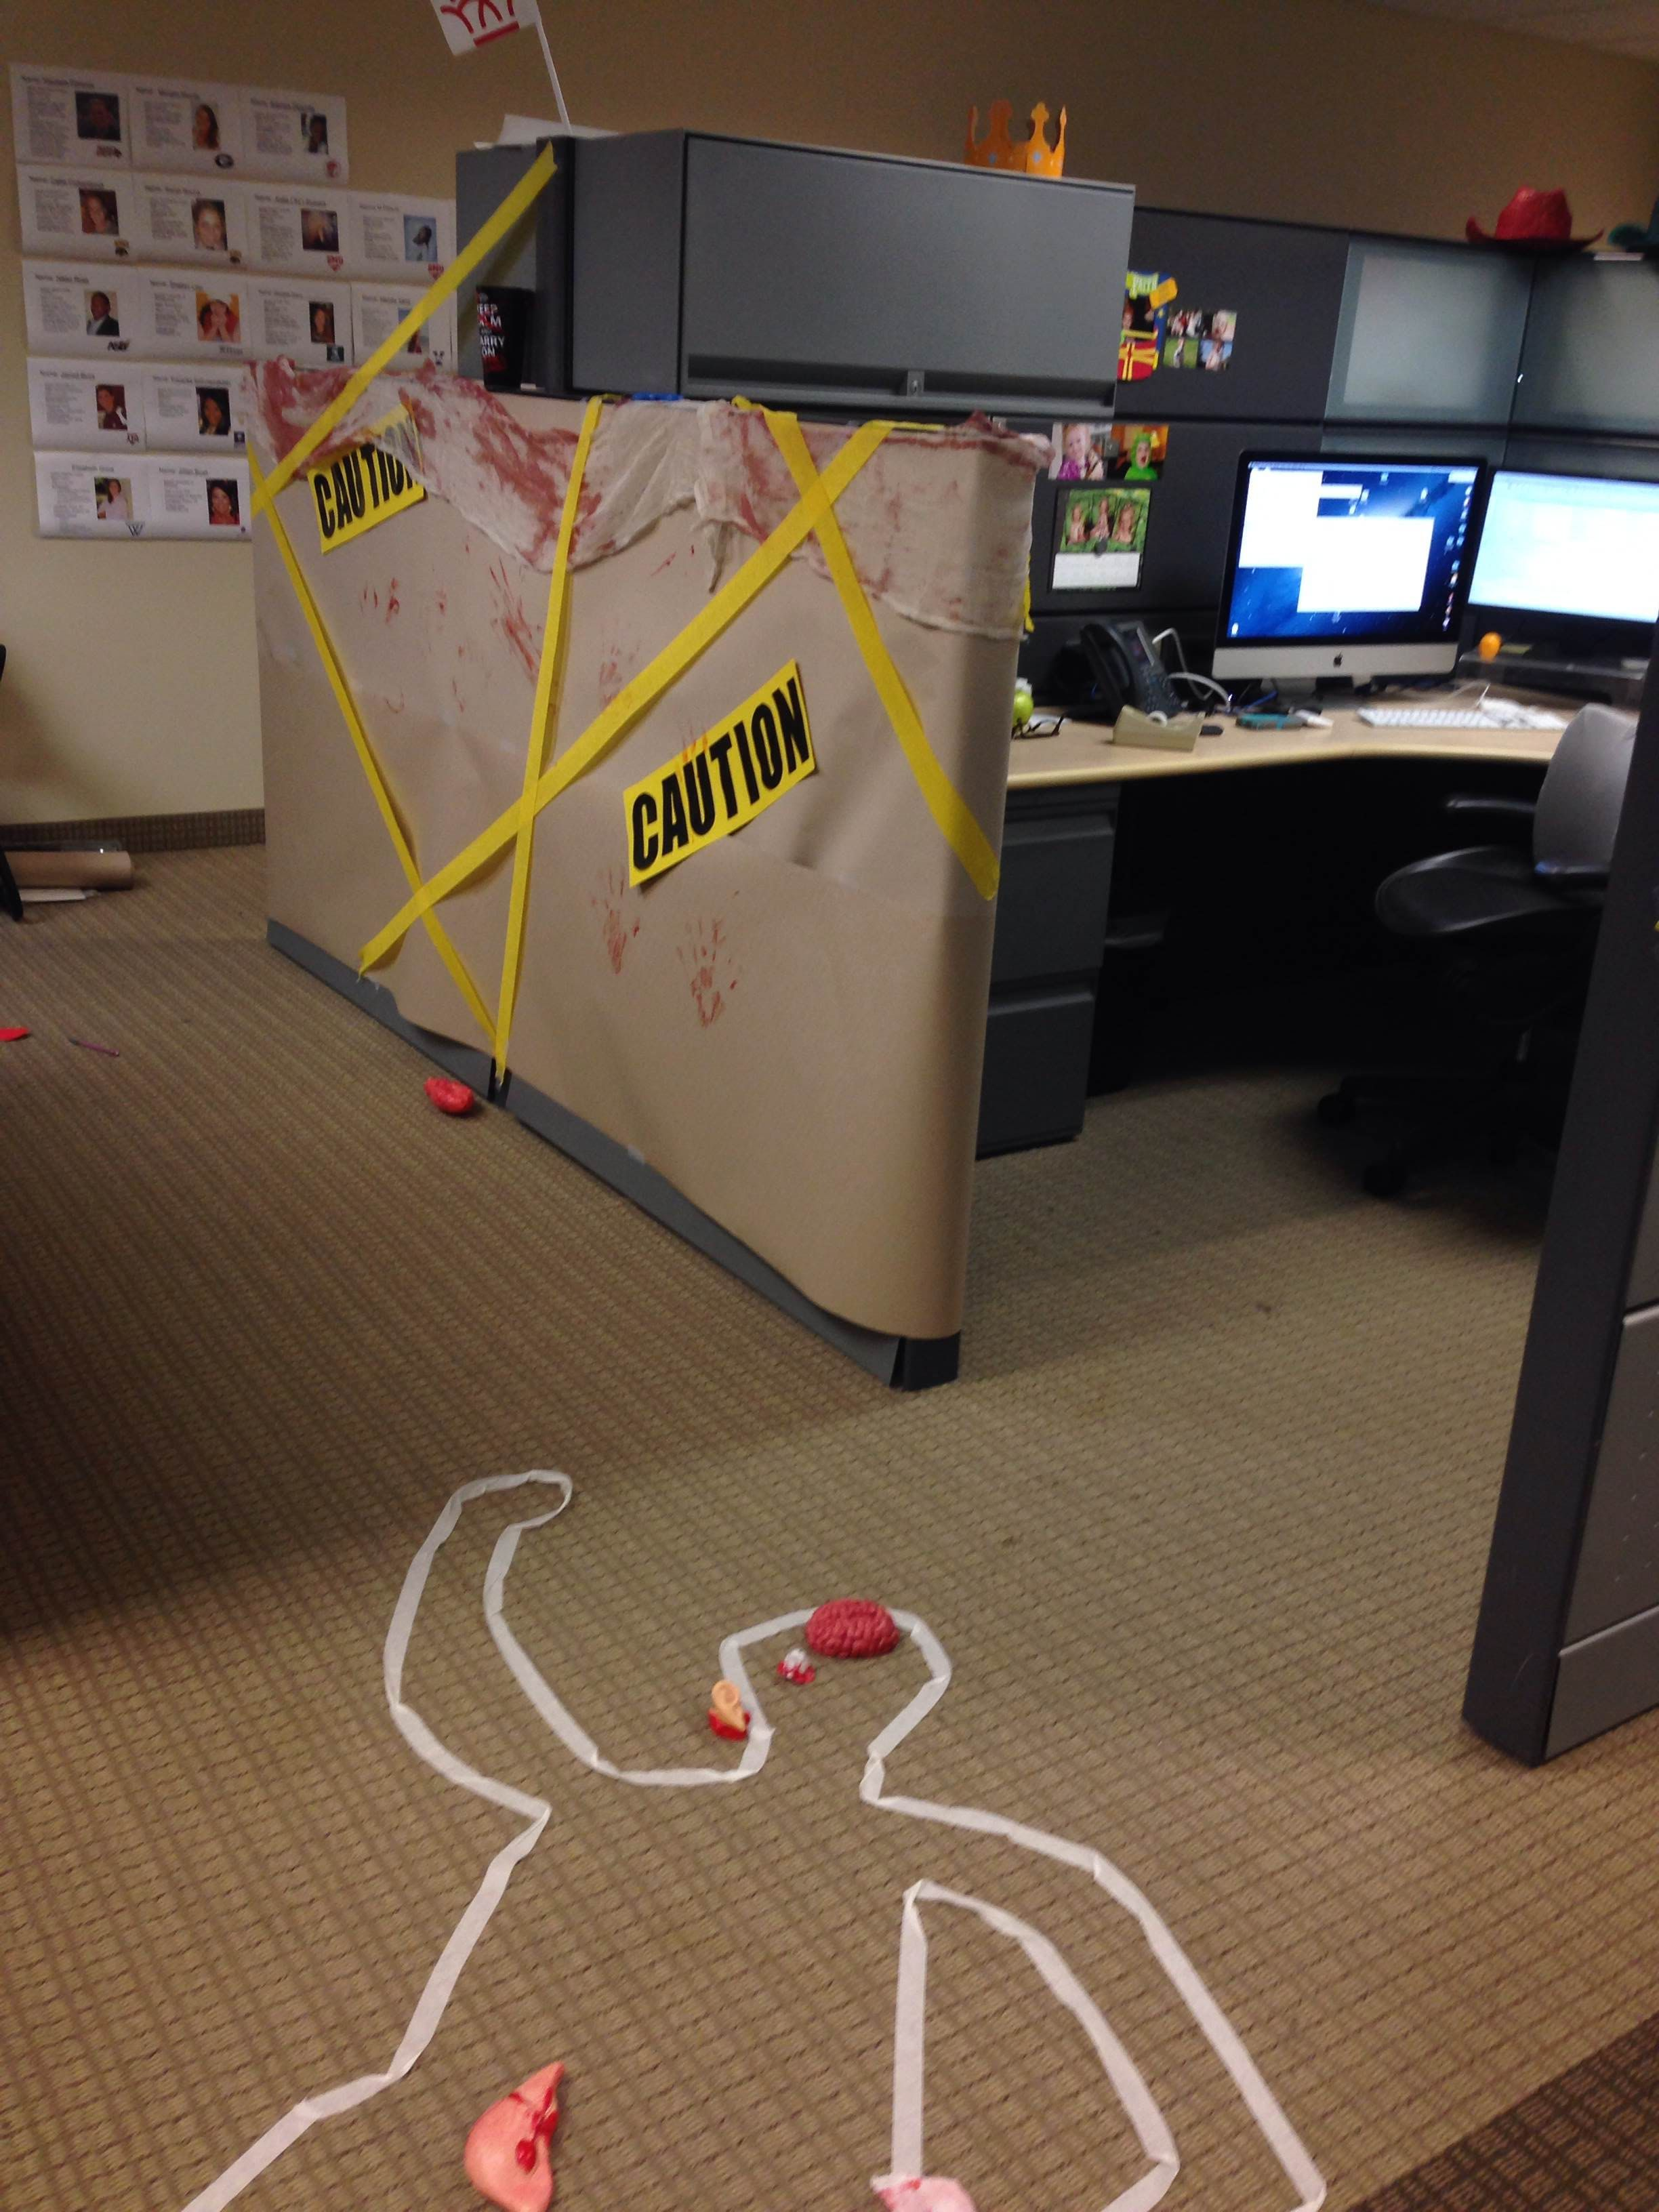 Office halloween decorations ideas - Cube Decorating Contest In The Office Happy Halloween Crime Scene